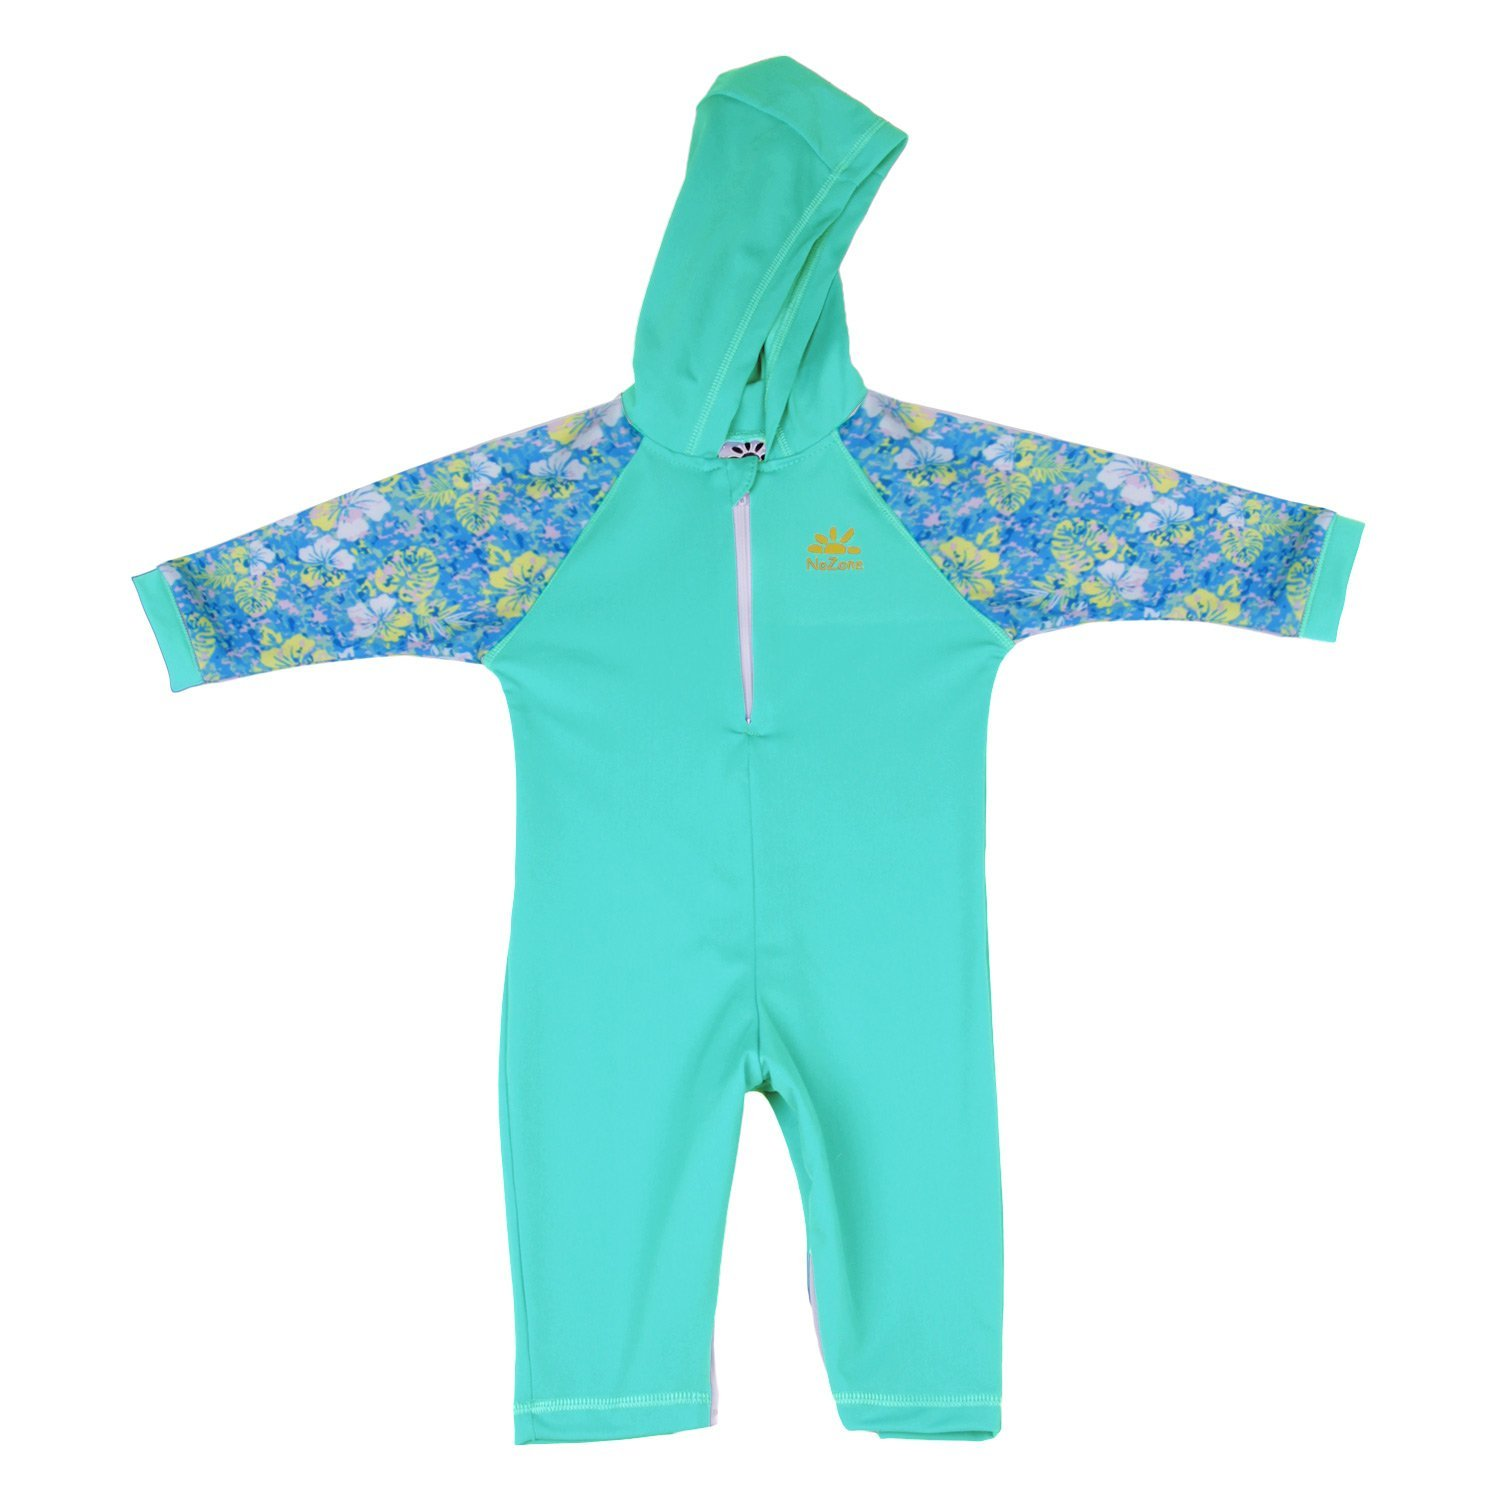 Nozone Kailua Hooded Baby Sun Protective Swimsuit in Aquatic/Aloha, 0-6 Months 2030ACPTP06